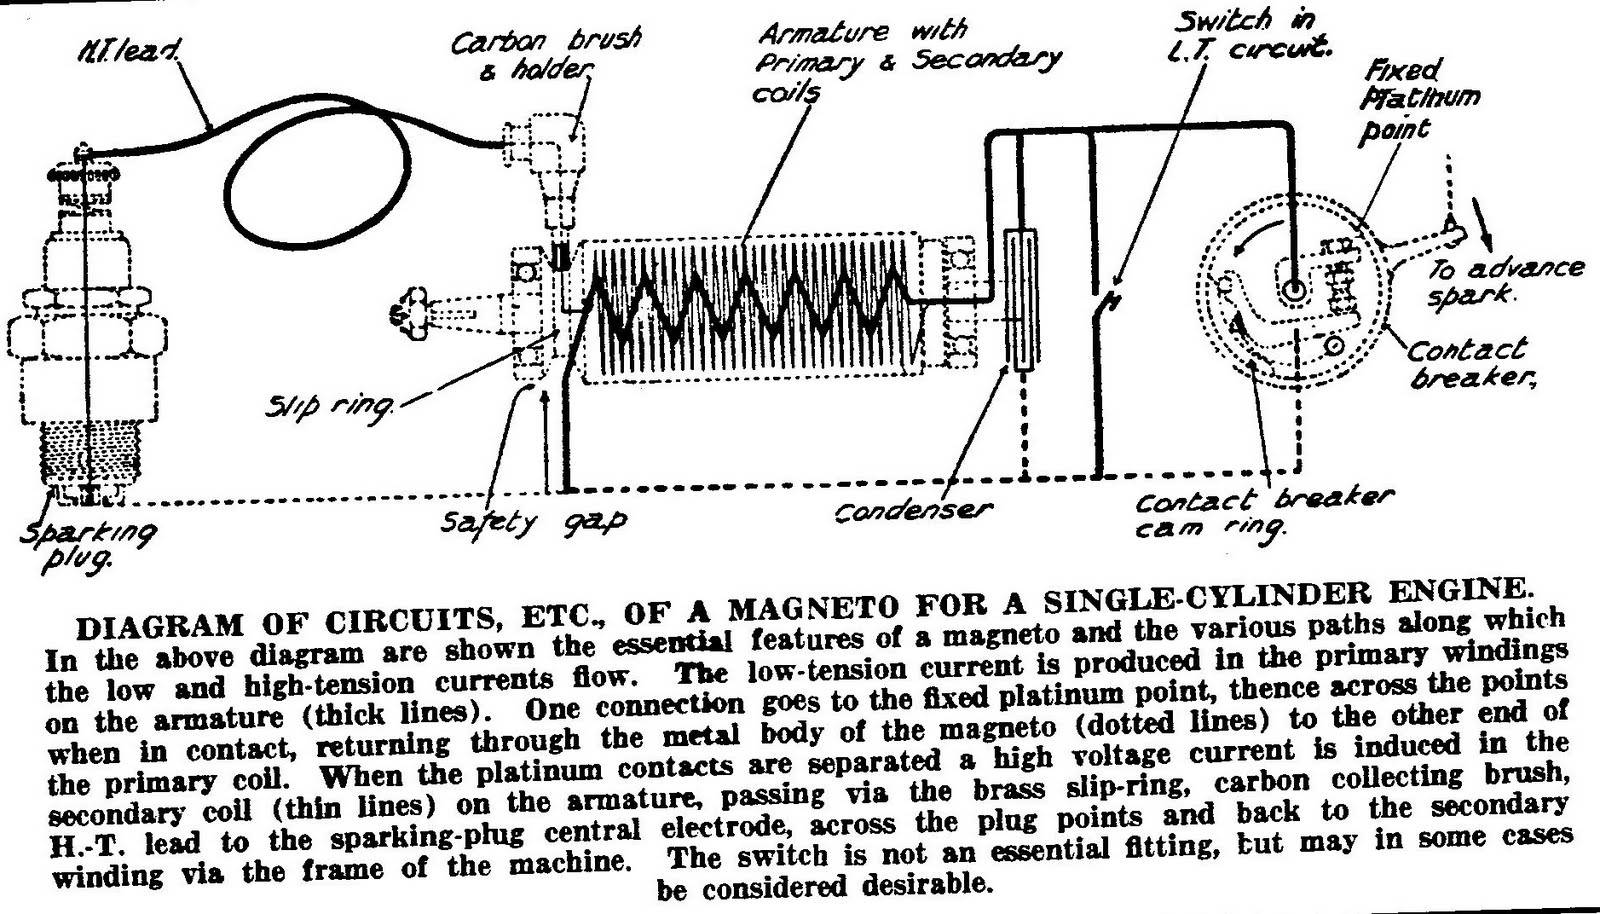 hight resolution of first a self explanatory wiring diagram from radco s vintage motorcyclists workshop showing how a magneto works